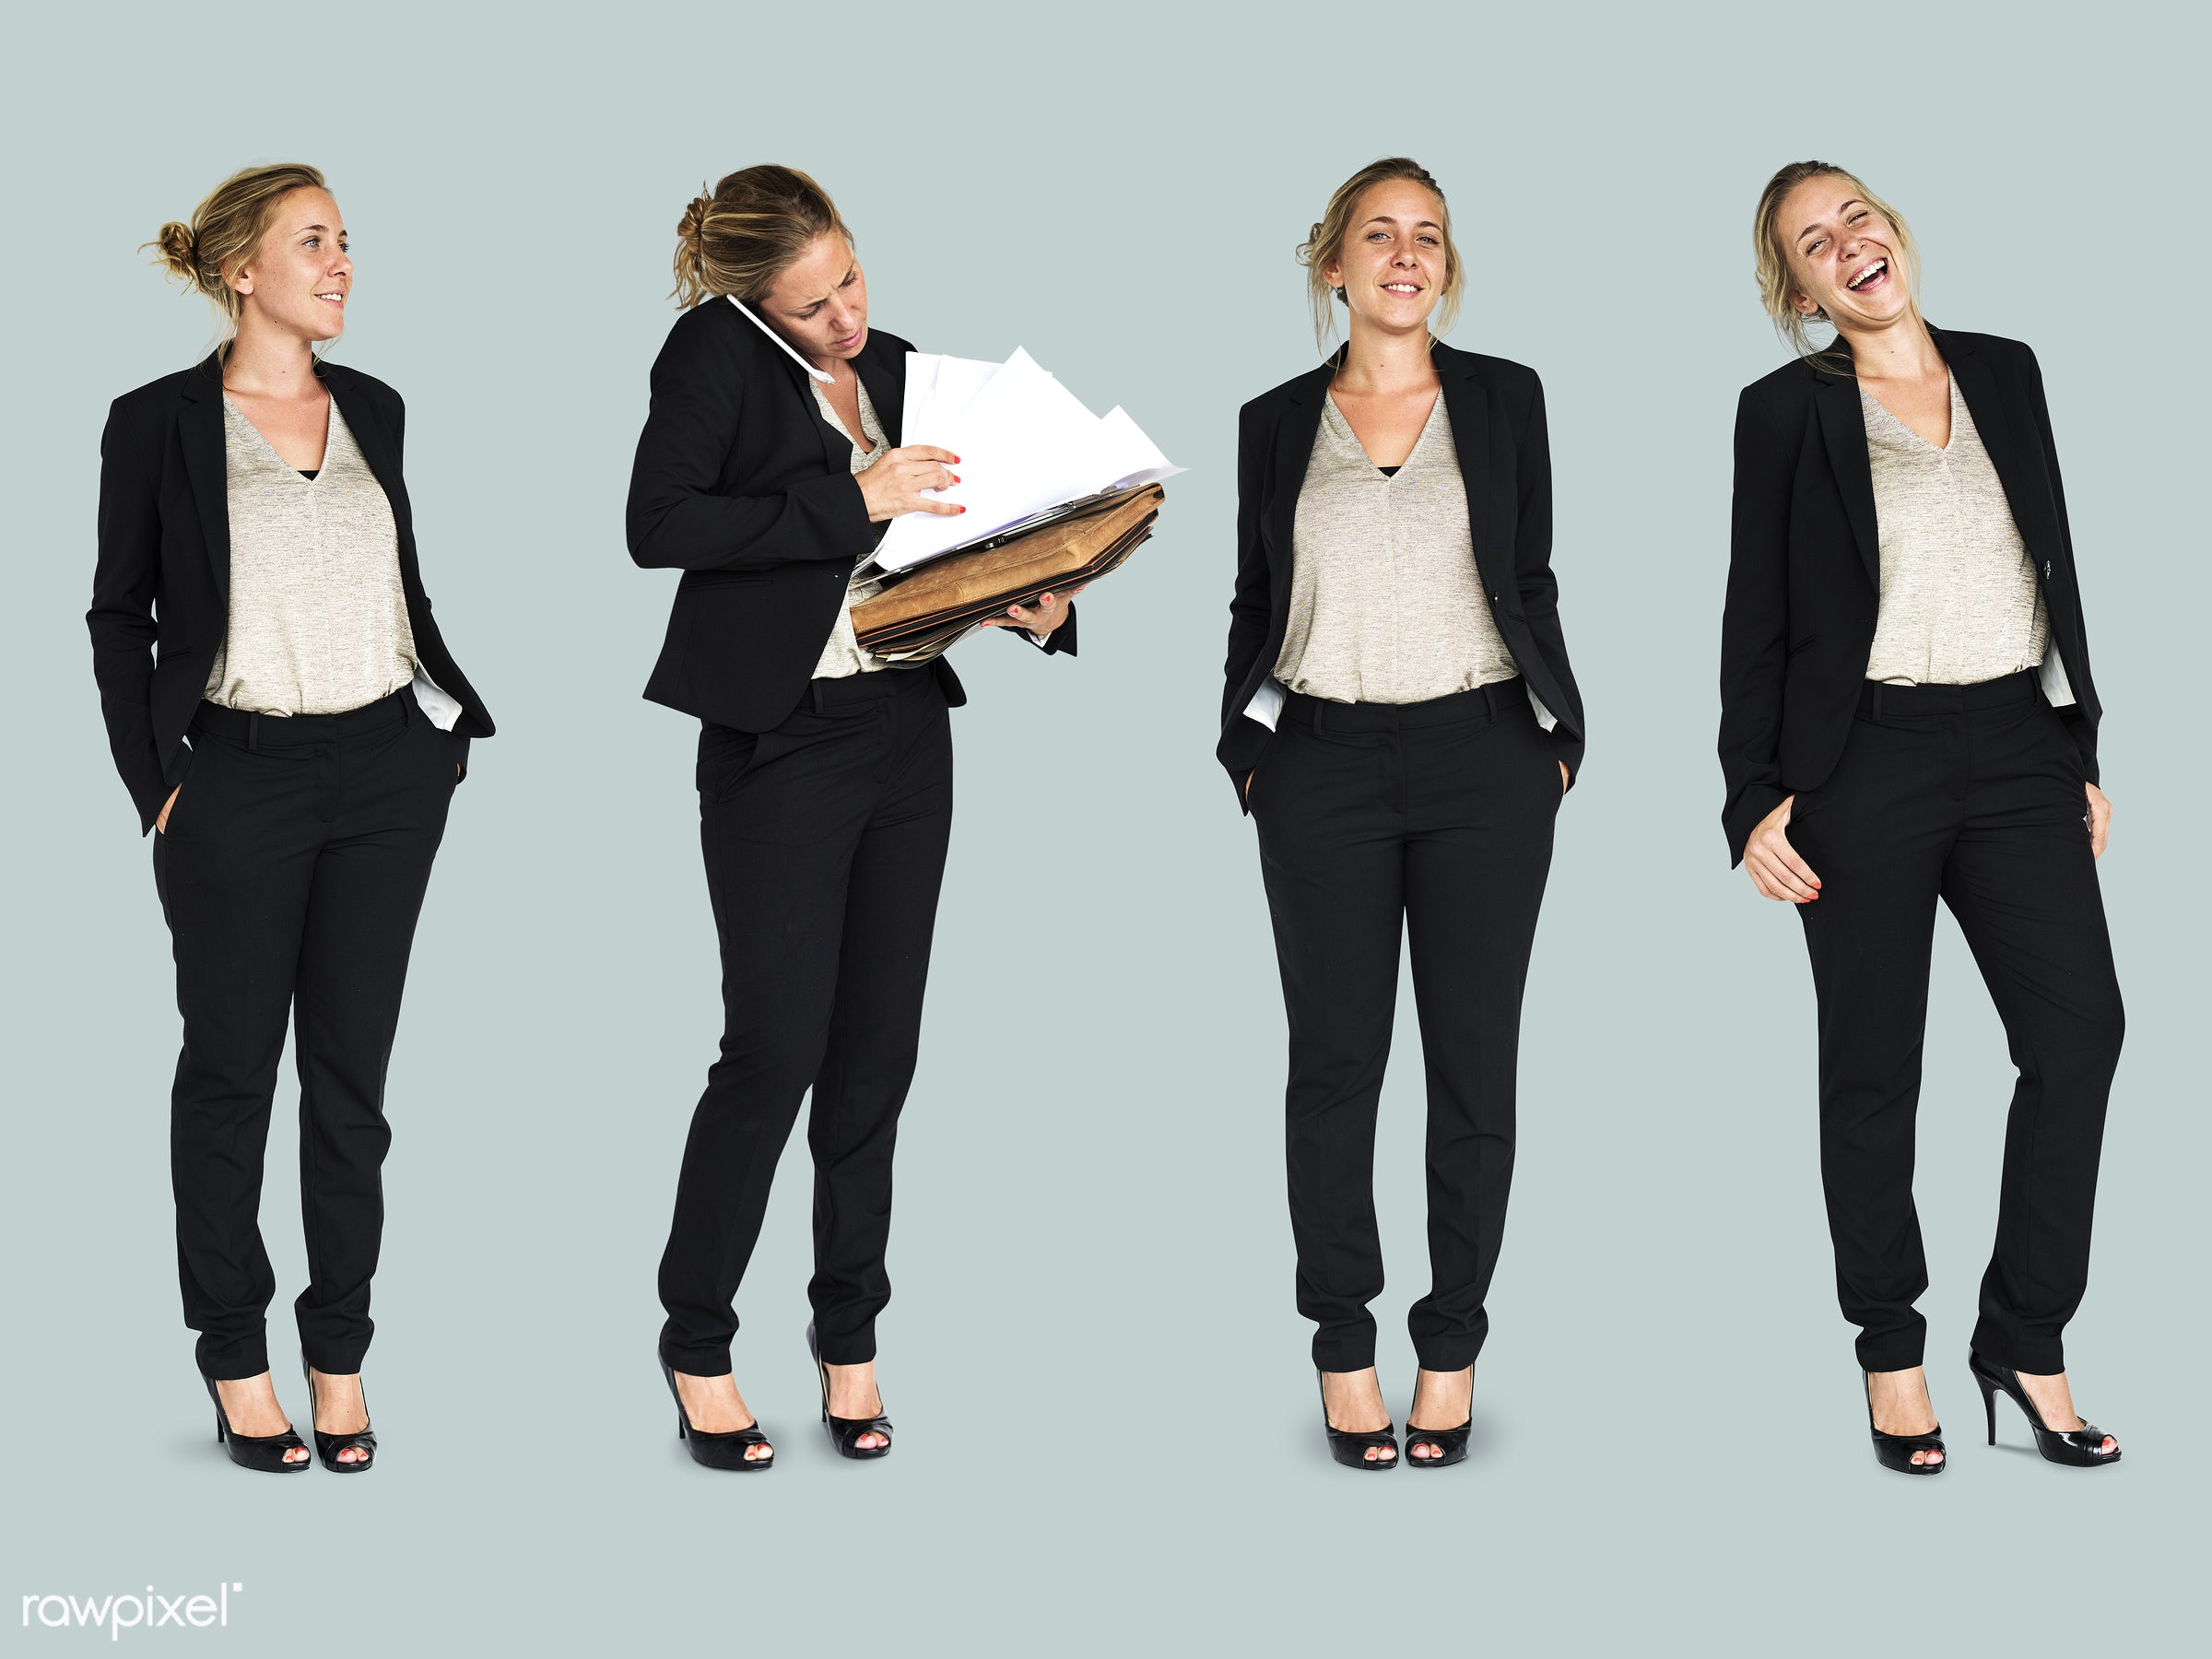 studio, person, manager, full length, profession, people, business, caucasian, assistant, style, businesswomen, happy,...